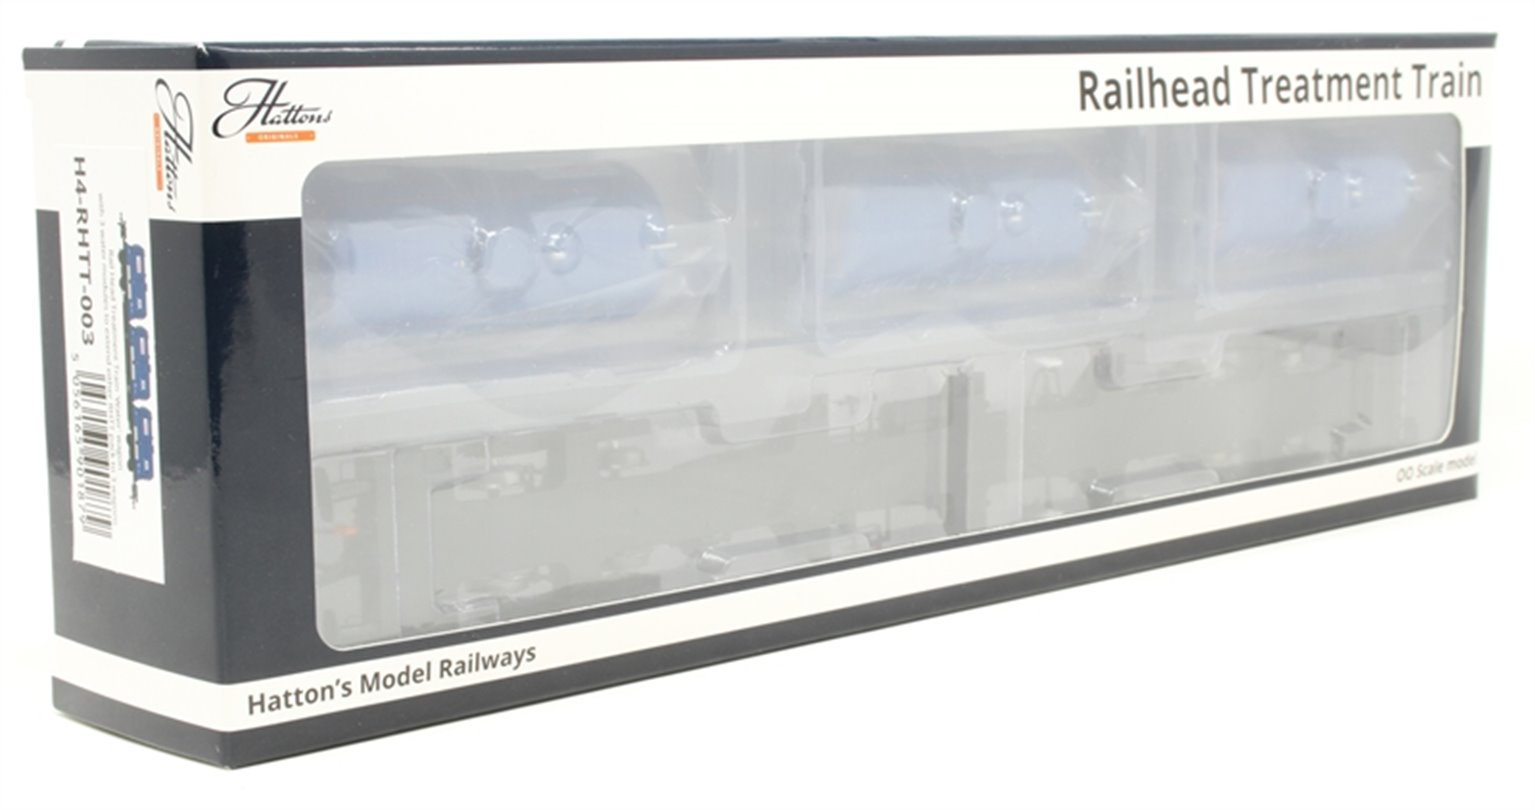 Rail Head Treatment Train 'Water' wagon with 3 water modules to extend either RHTT pack to 3 wagons